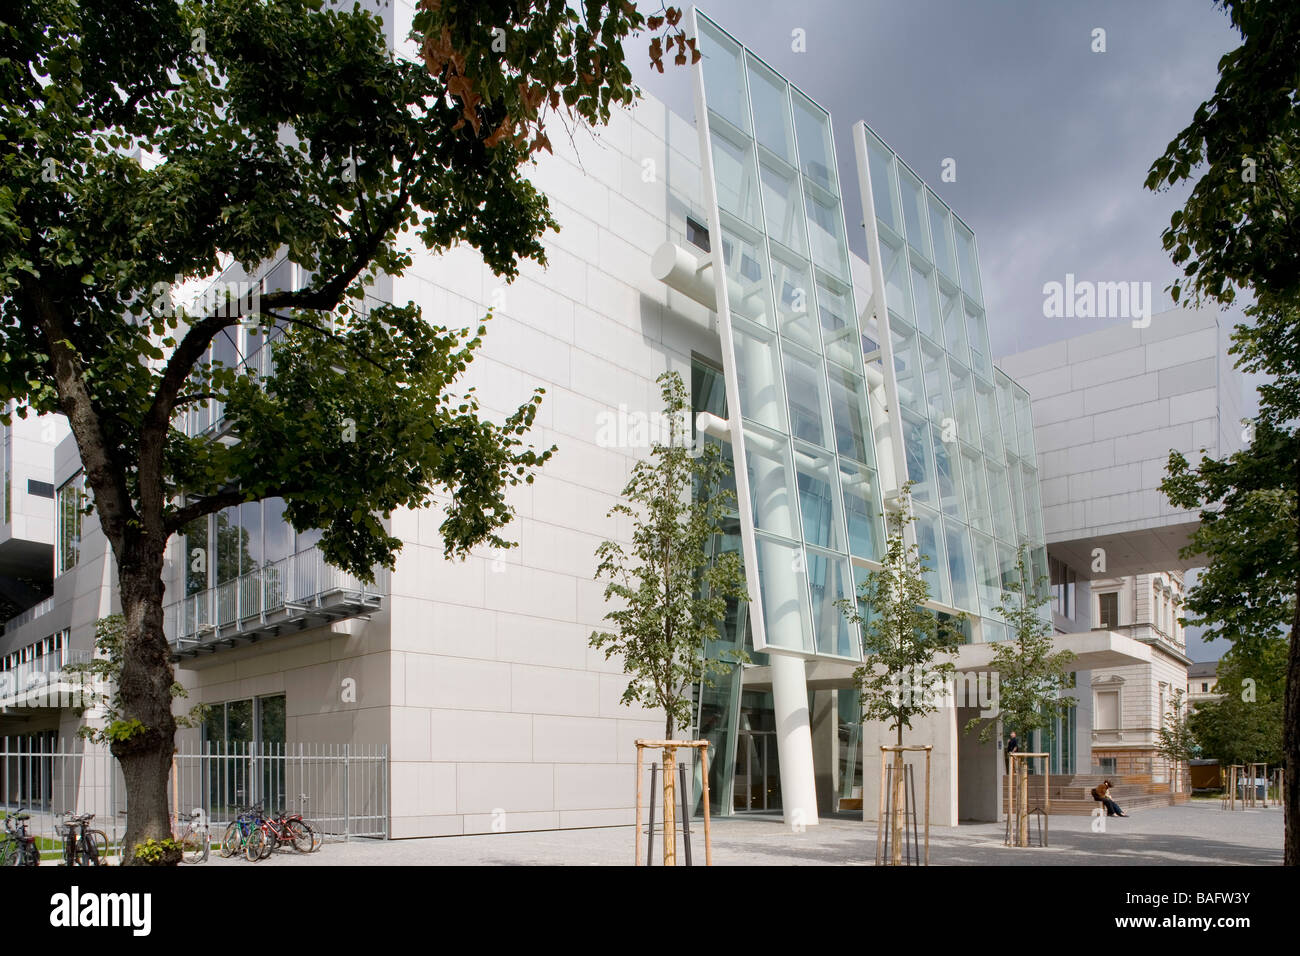 Academia of Fine Arts, Munich, Germany, Coop Himmelb(l)au, Academia of fine arts main entrance from the south west. - Stock Image